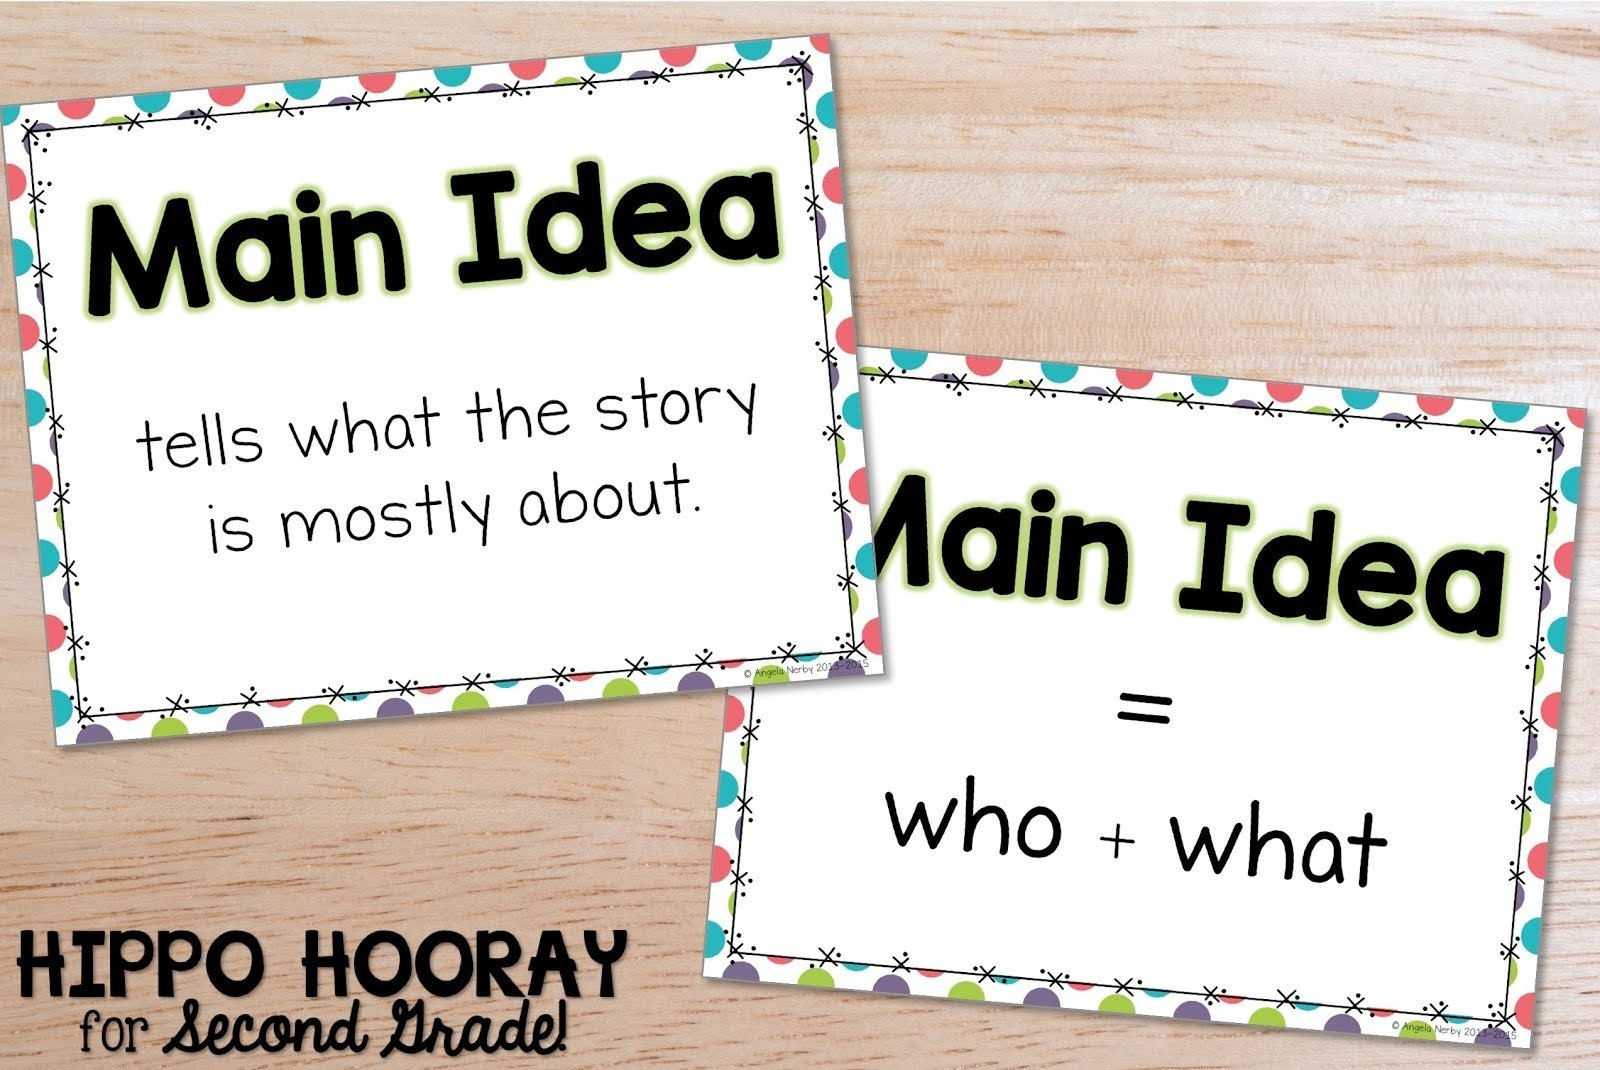 10 Elegant How To Find The Main Idea Of A Story teaching main idea in nonfiction texts hippo hooray for second grade 2020